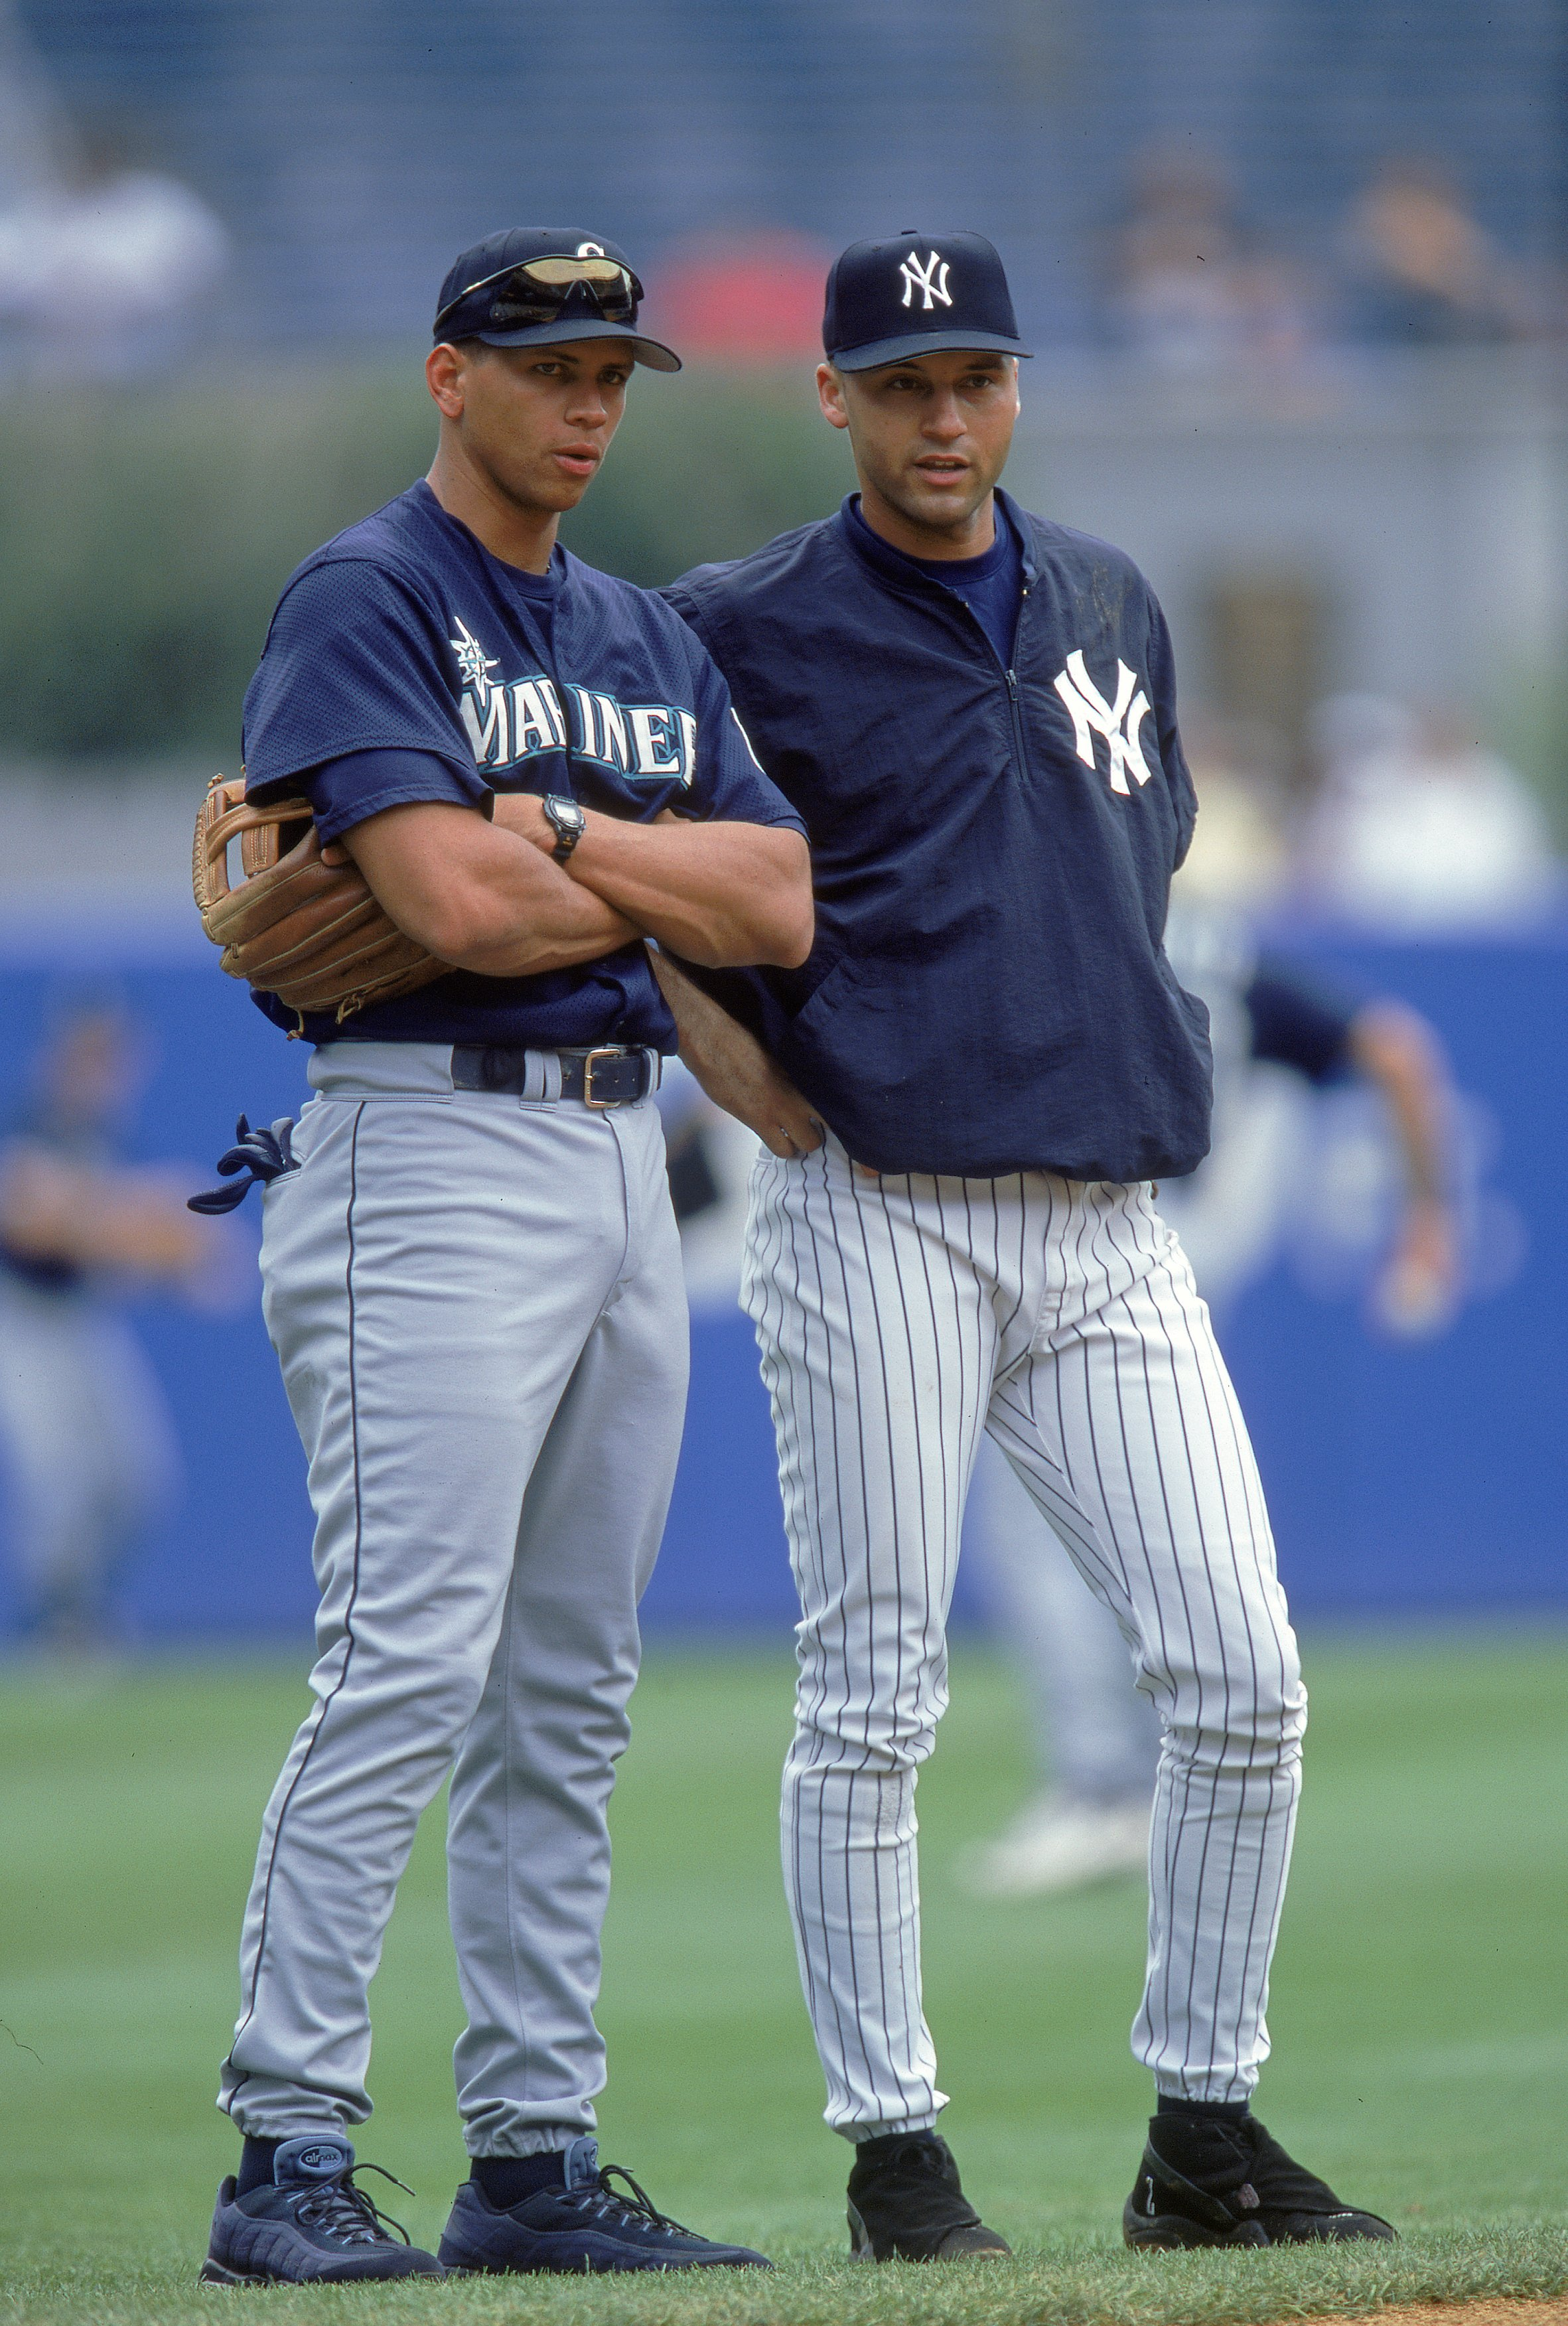 6 Aug 2000:  Derek Jeter #2 of the New York Yankees talks with Alex Rodriguez #3 of the Seattle Mariners during practice before the game at Yankee Stadium in the Bronx, New York. The Mariners defeated the Yankees 11-1.Mandatory Credit: Jamie Squire  /Alls